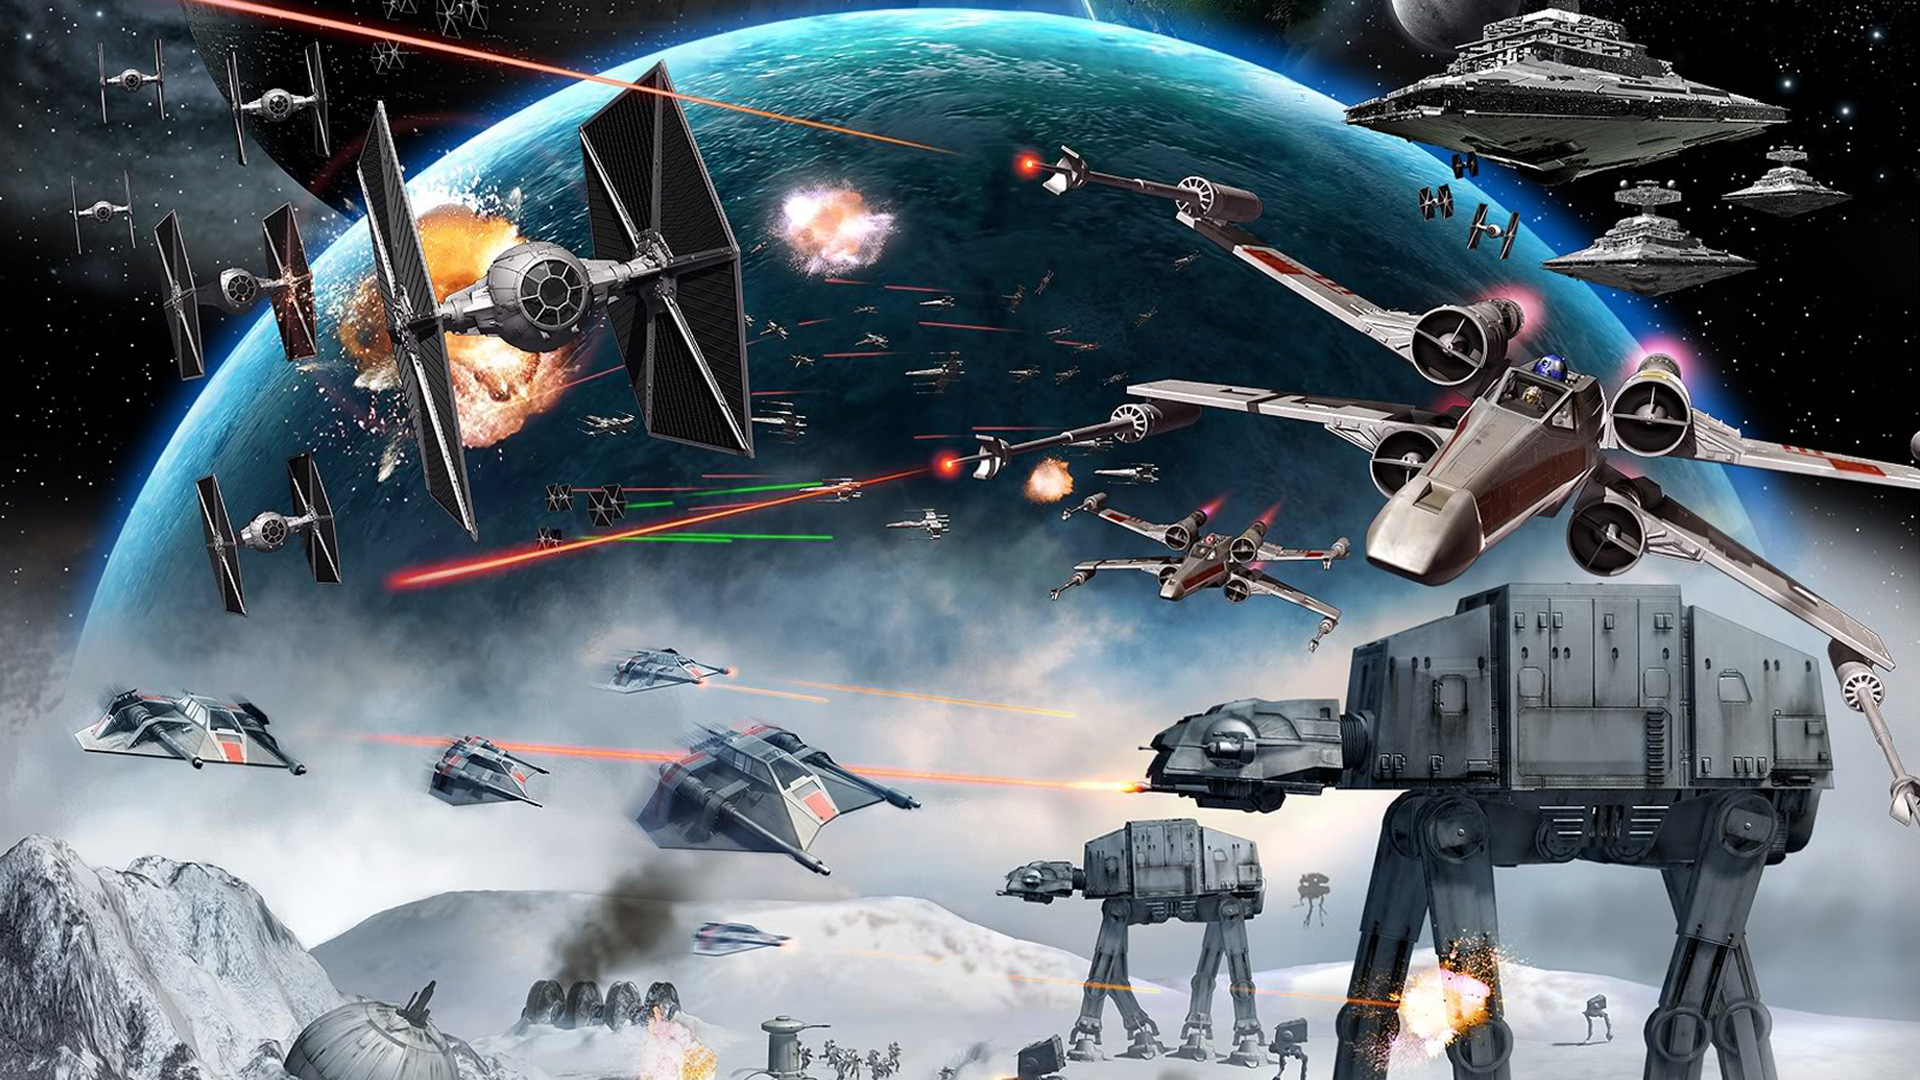 FizX Entertainment Huge Star Wars Wallpapers Collection 1920x1080